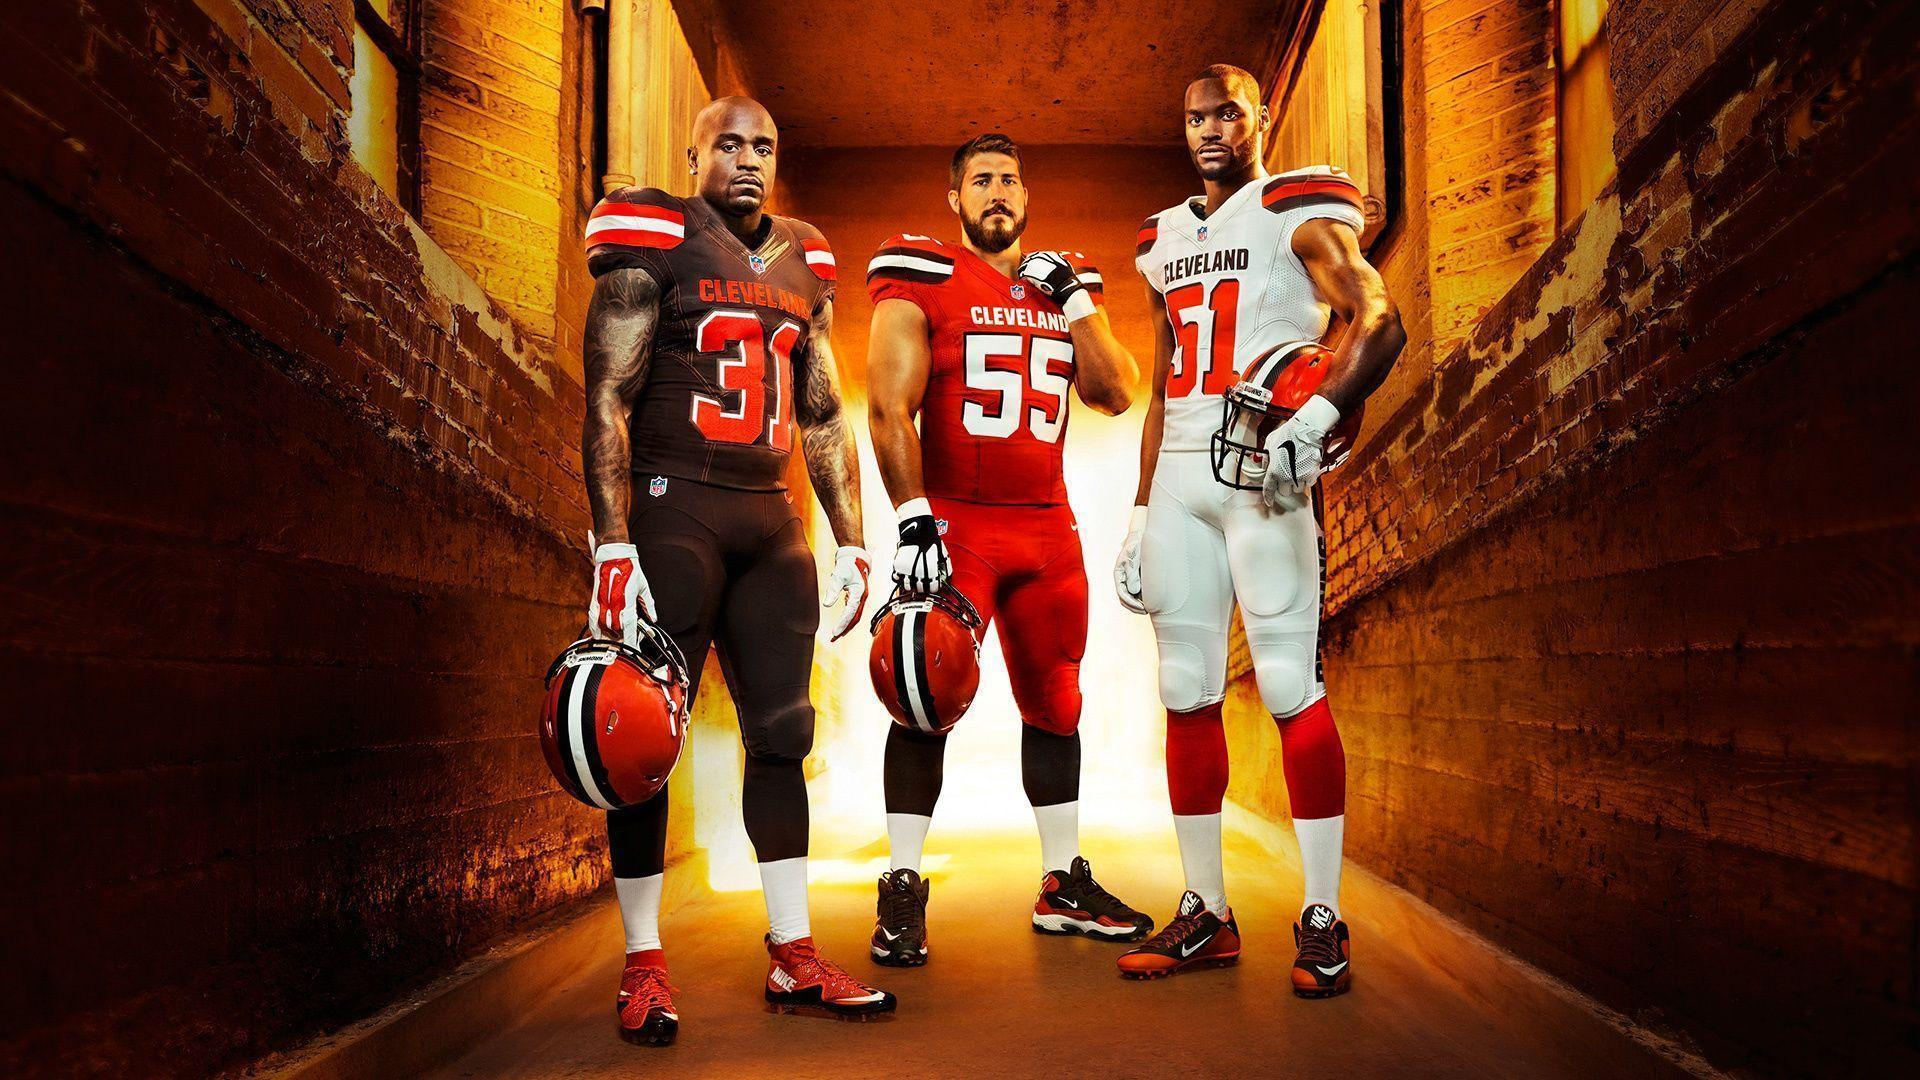 1920x1080 American Football, Team Players, Art, Cleveland Browns